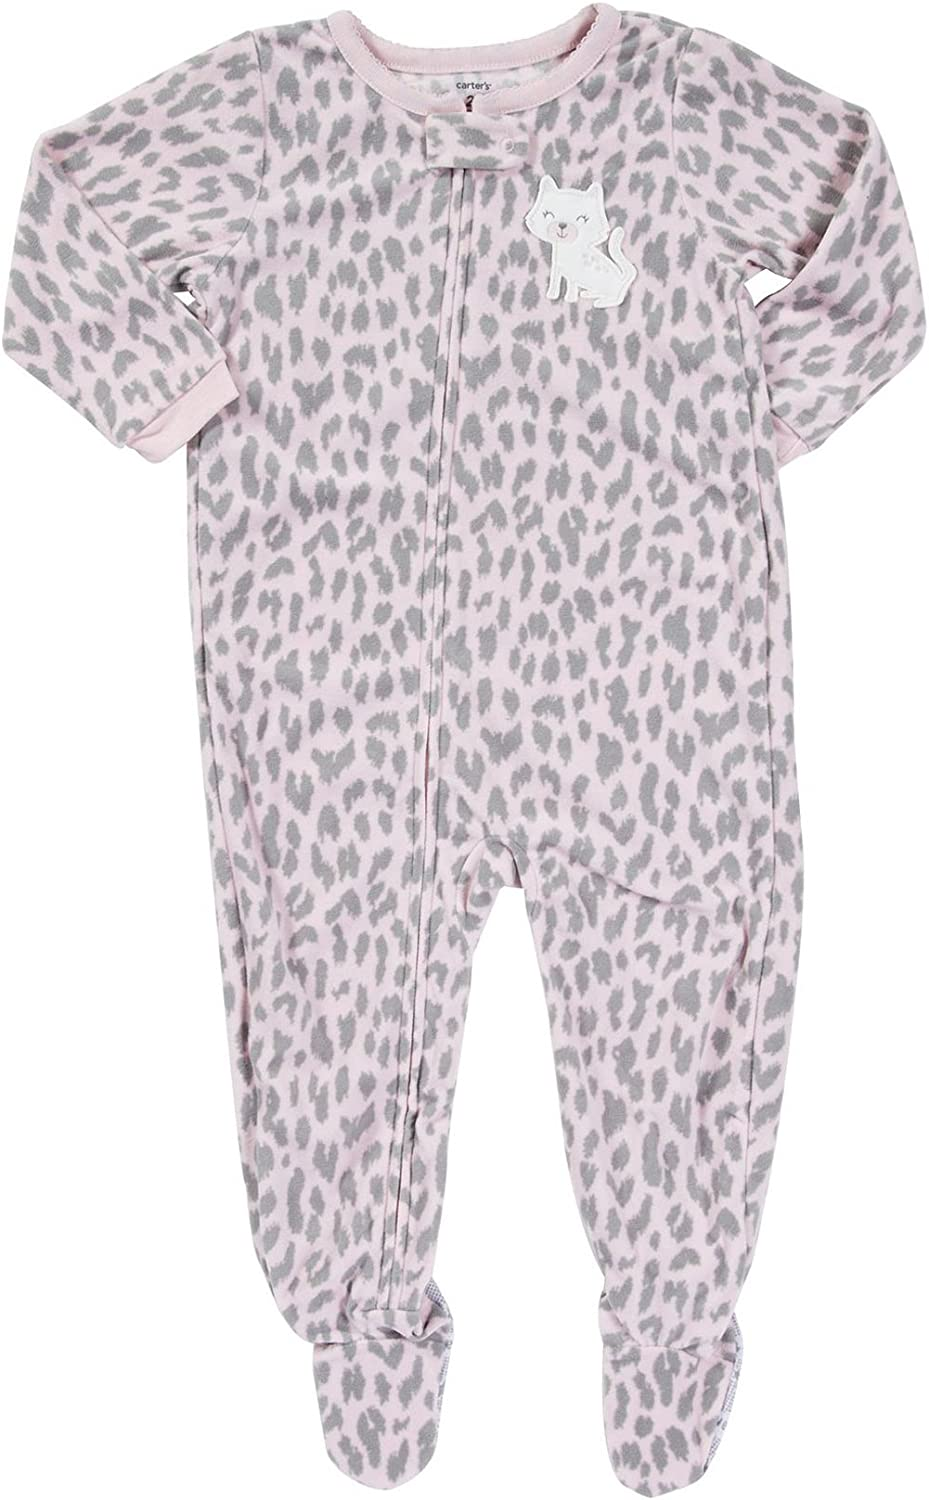 Amazon.com: Carter's Baby Girls' L/s Footed Blanket Sleeper: Clothing